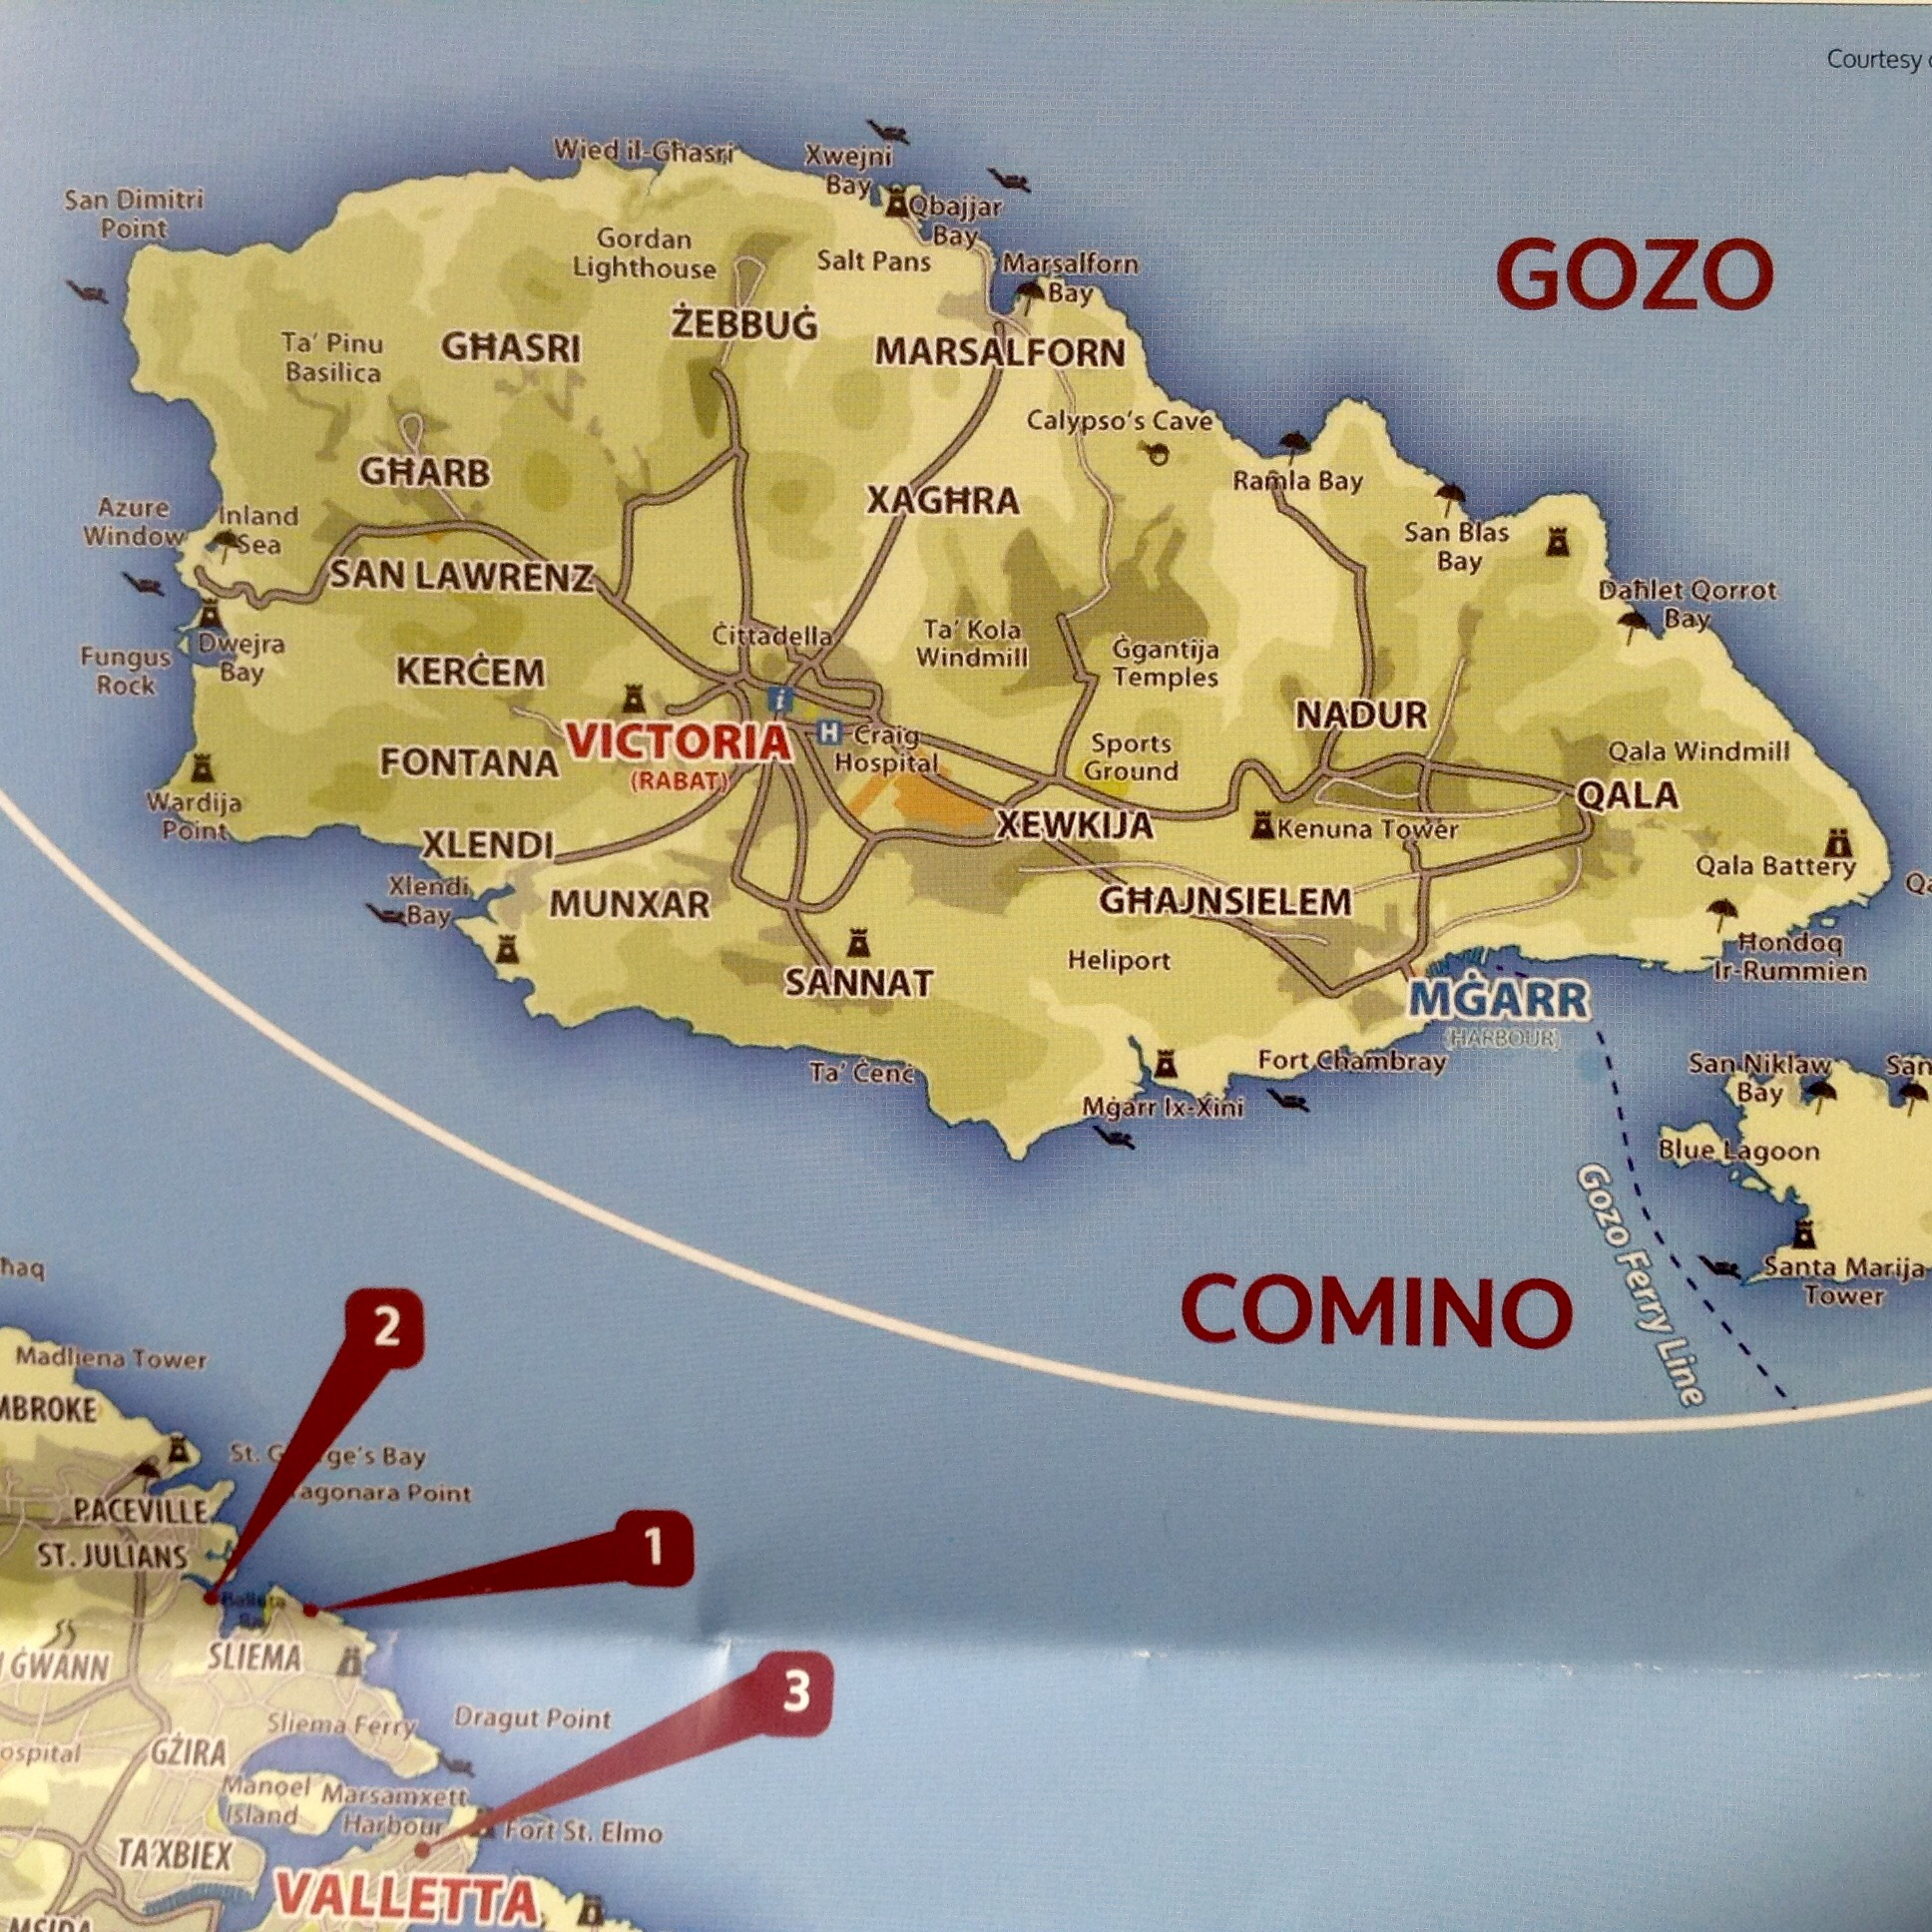 Map of Gozo